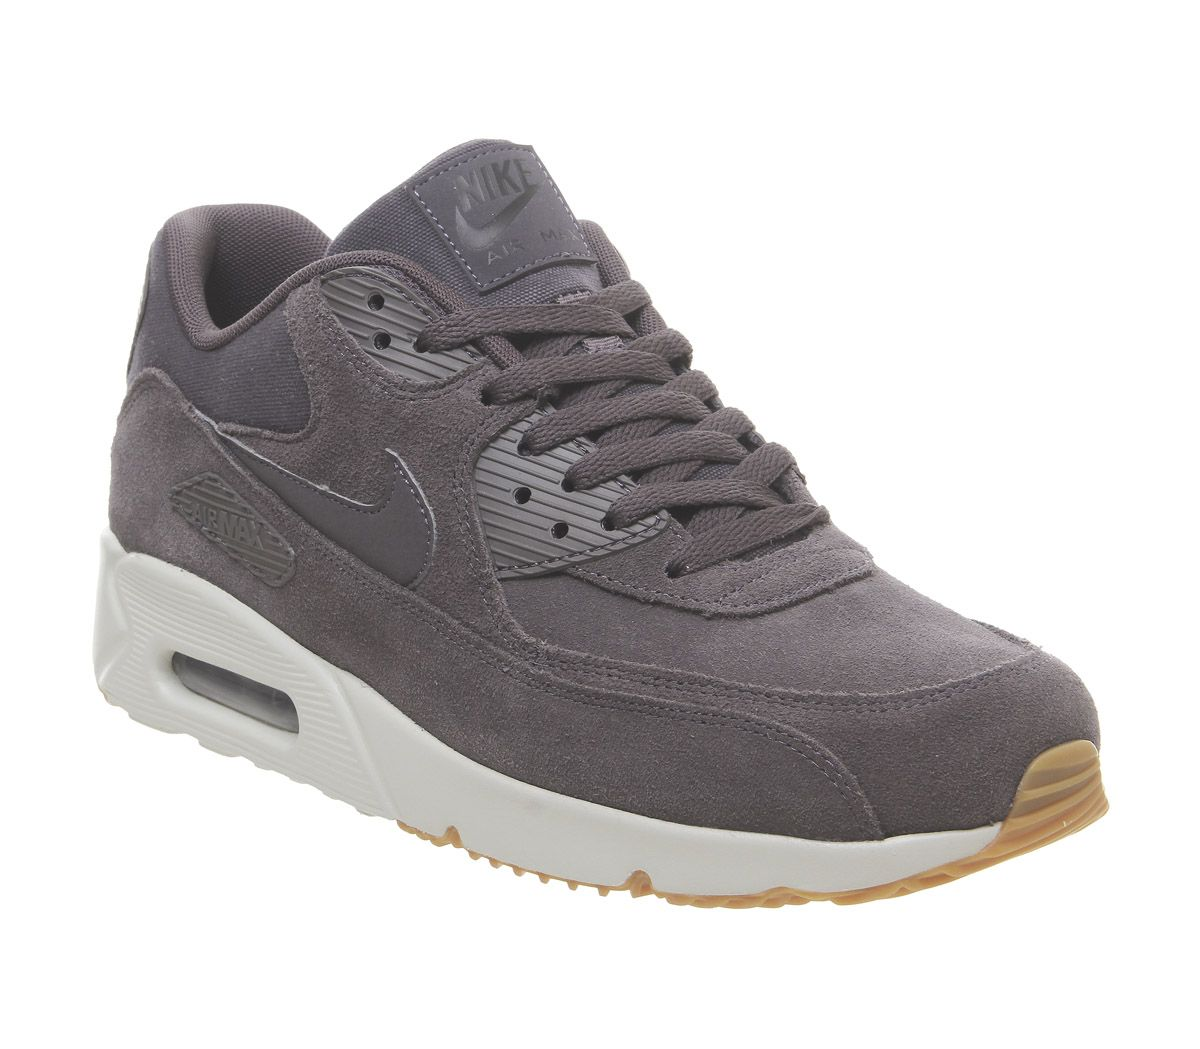 cheap for discount f8ca5 0a2e8 Nike Air Max 90 Ultra 2.0 Trainers Thunder Grey Light Bone Gum - His ...